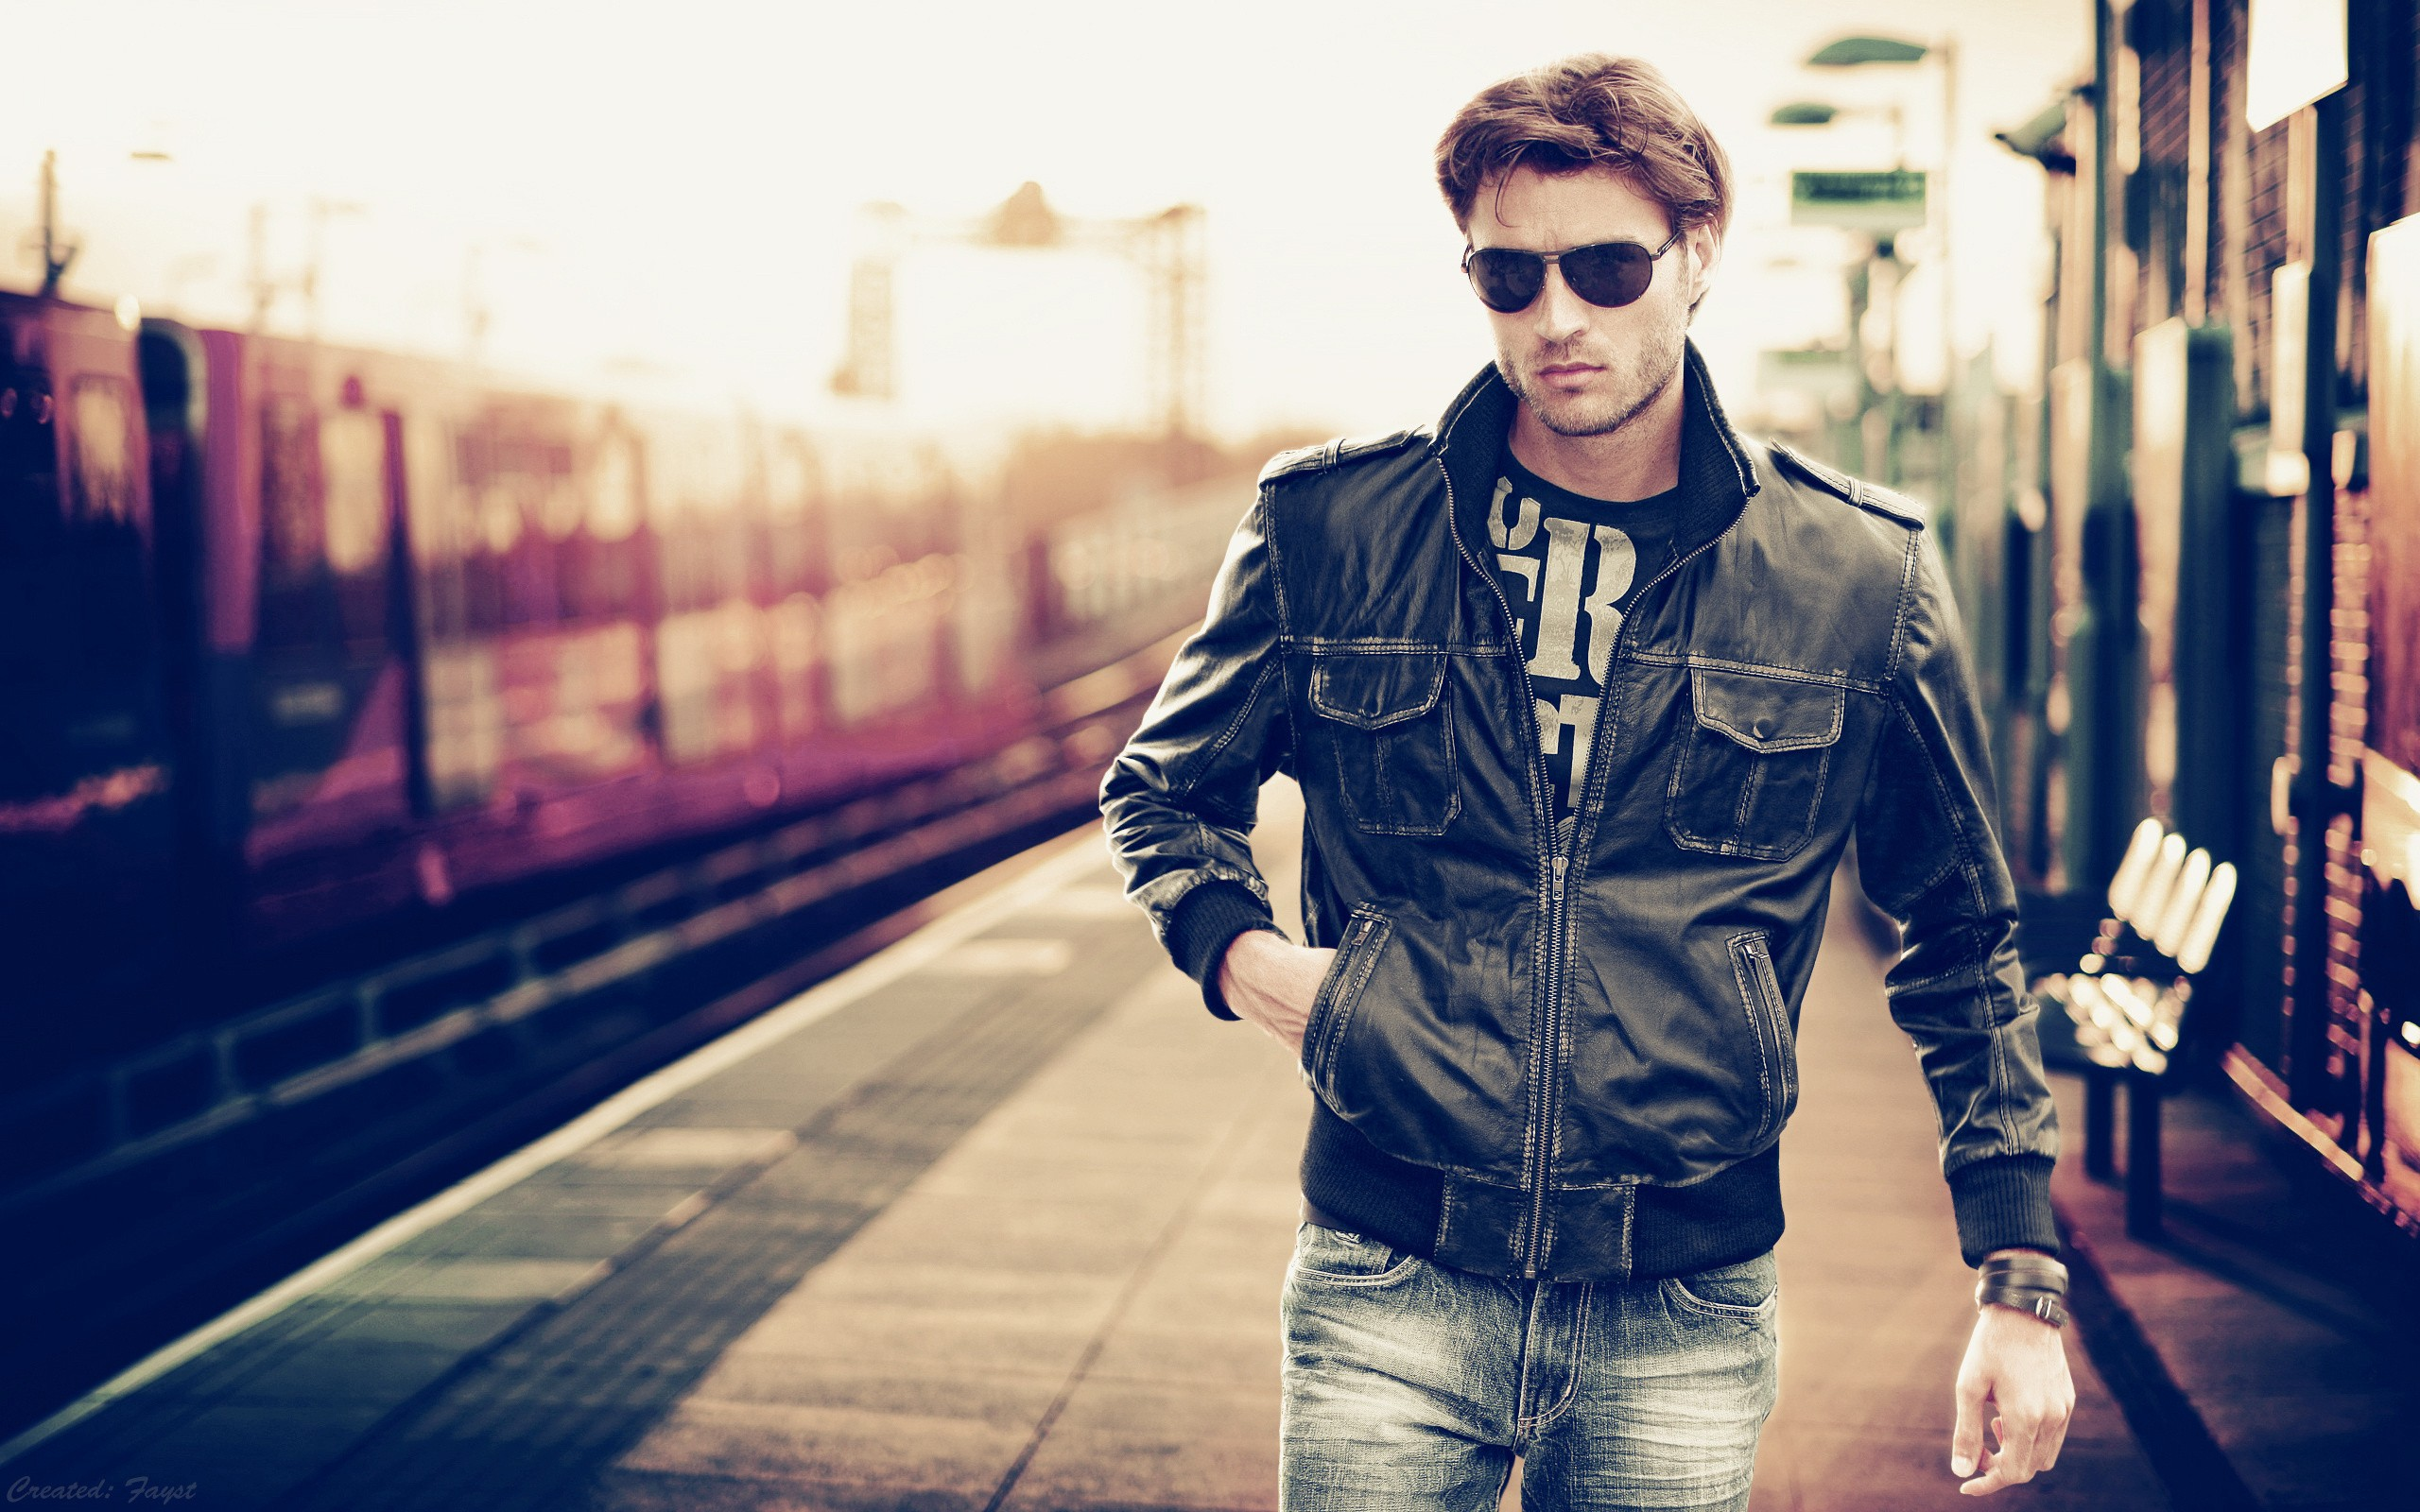 Fantastic Men Fashion Wallpaper 40447 2560x1600 Px